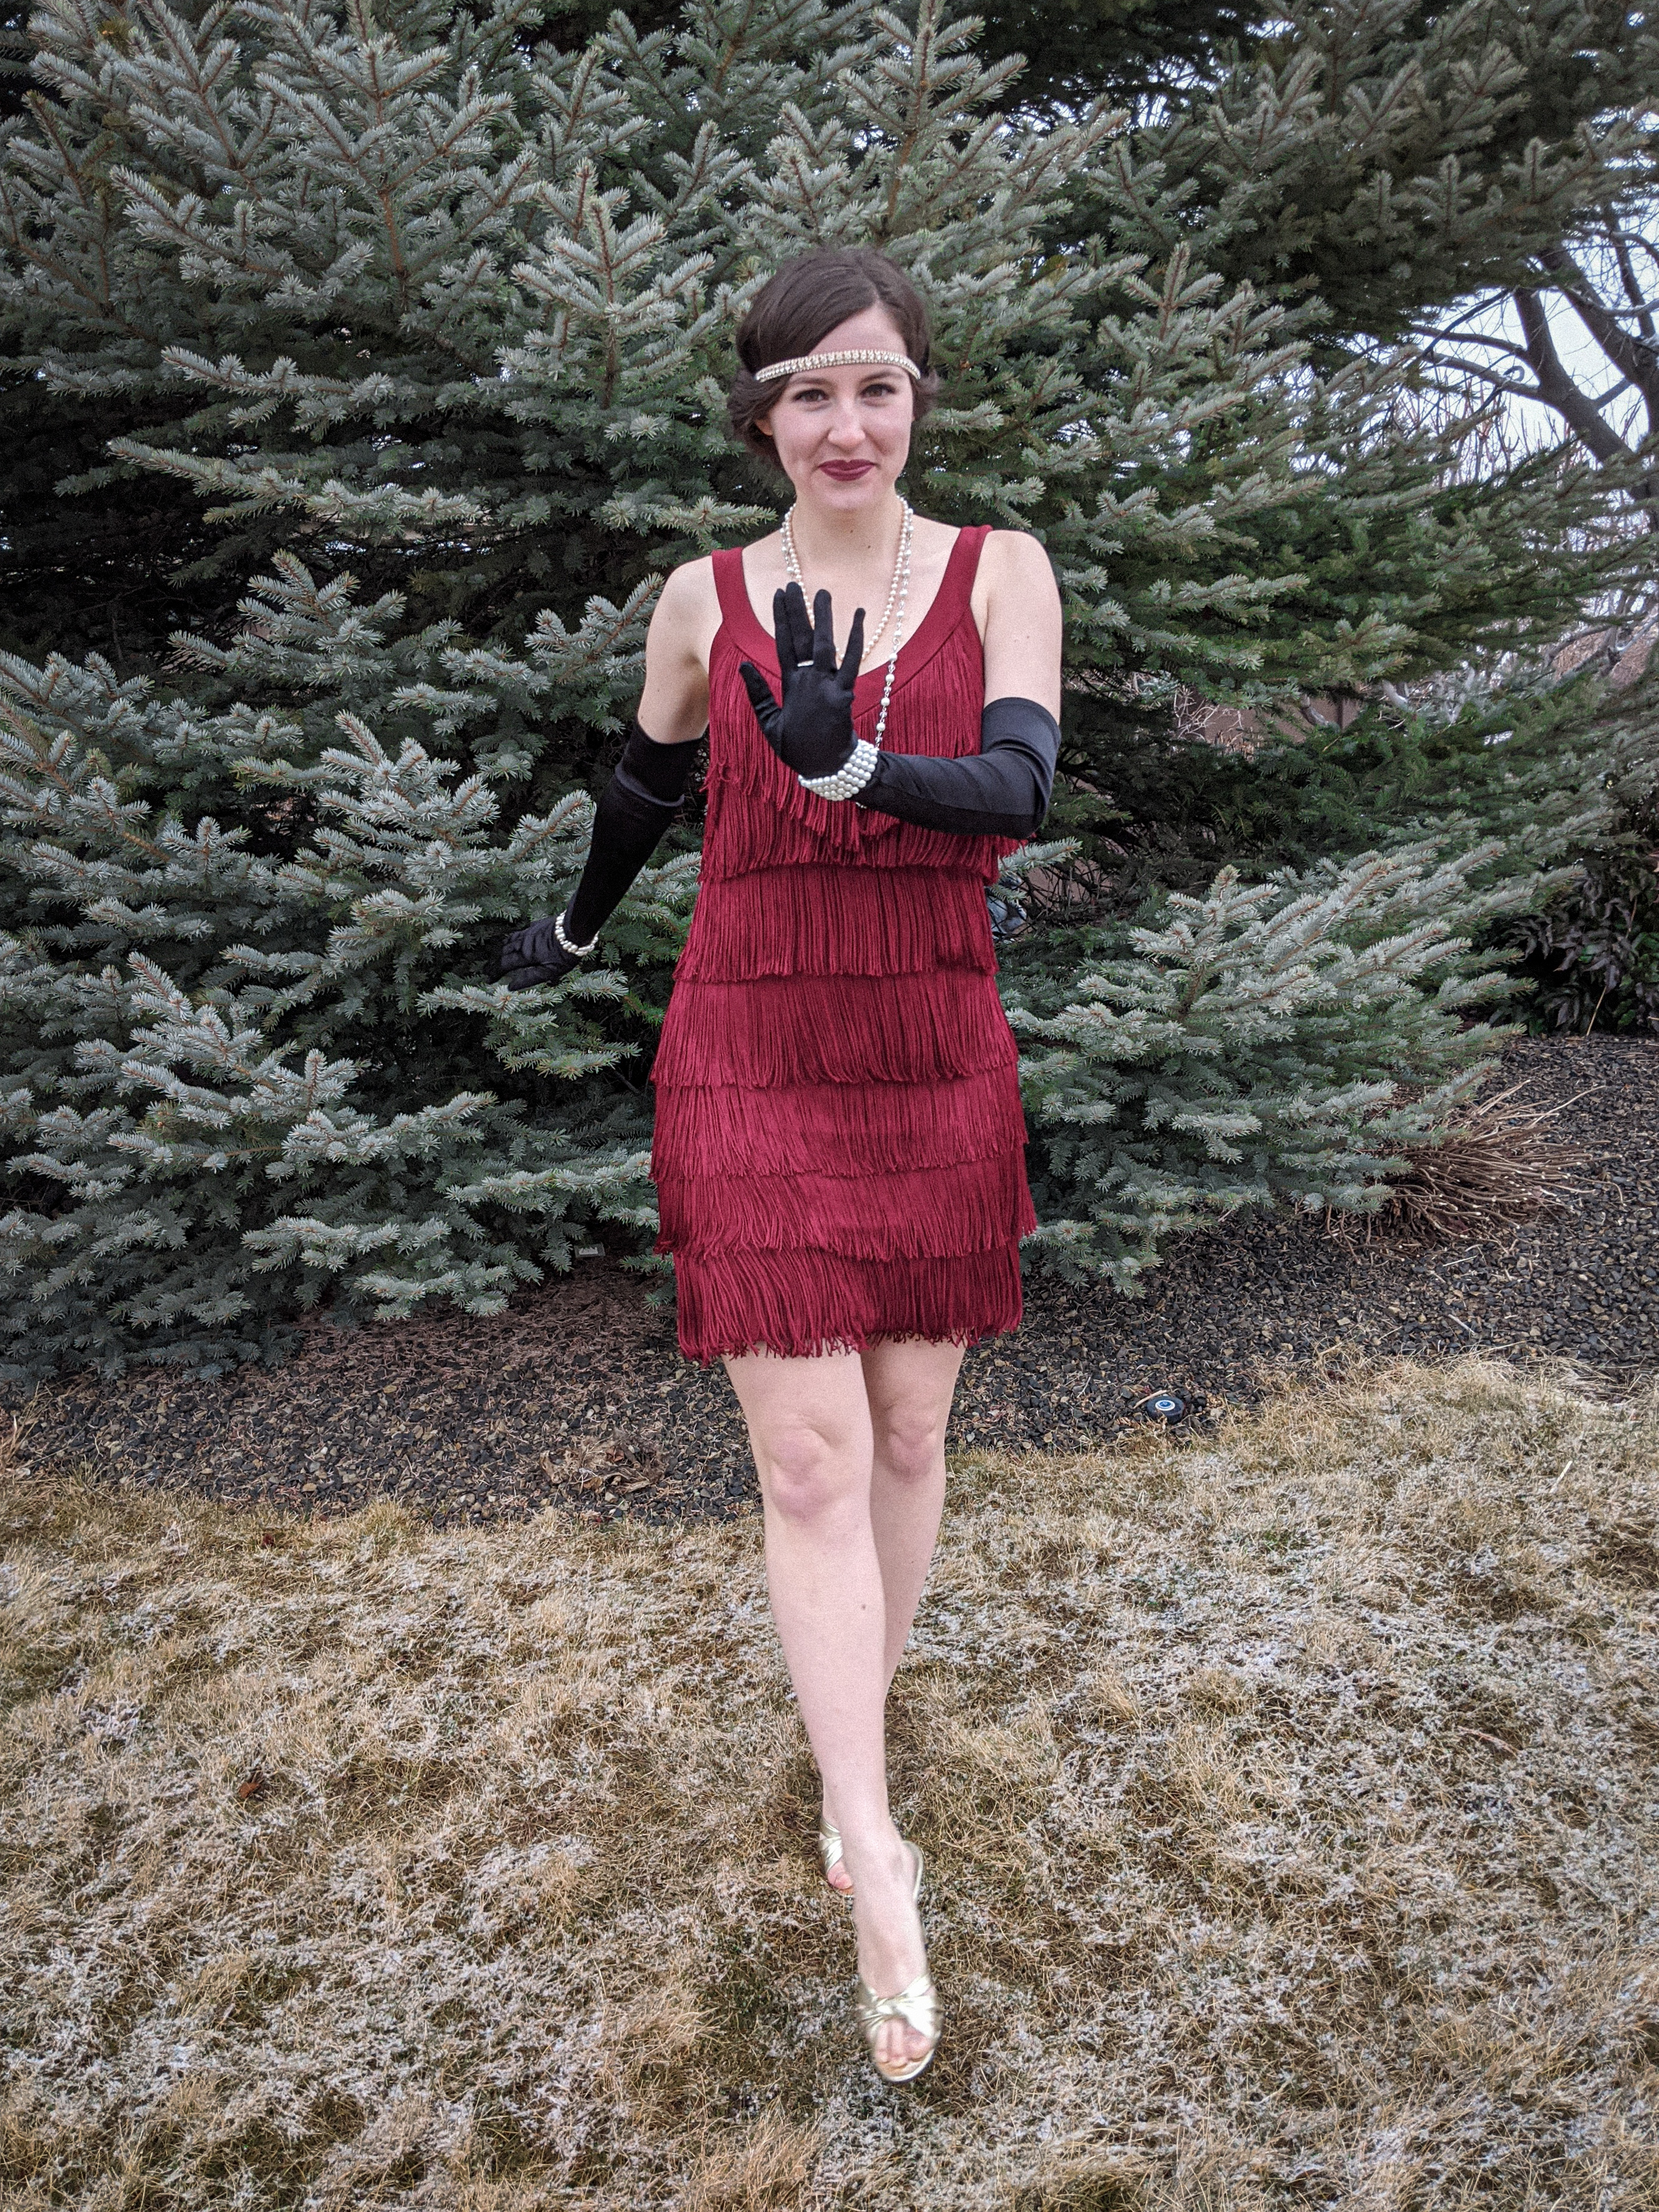 flapper girl outfit, Charleston dance, roaring 20s, NYE